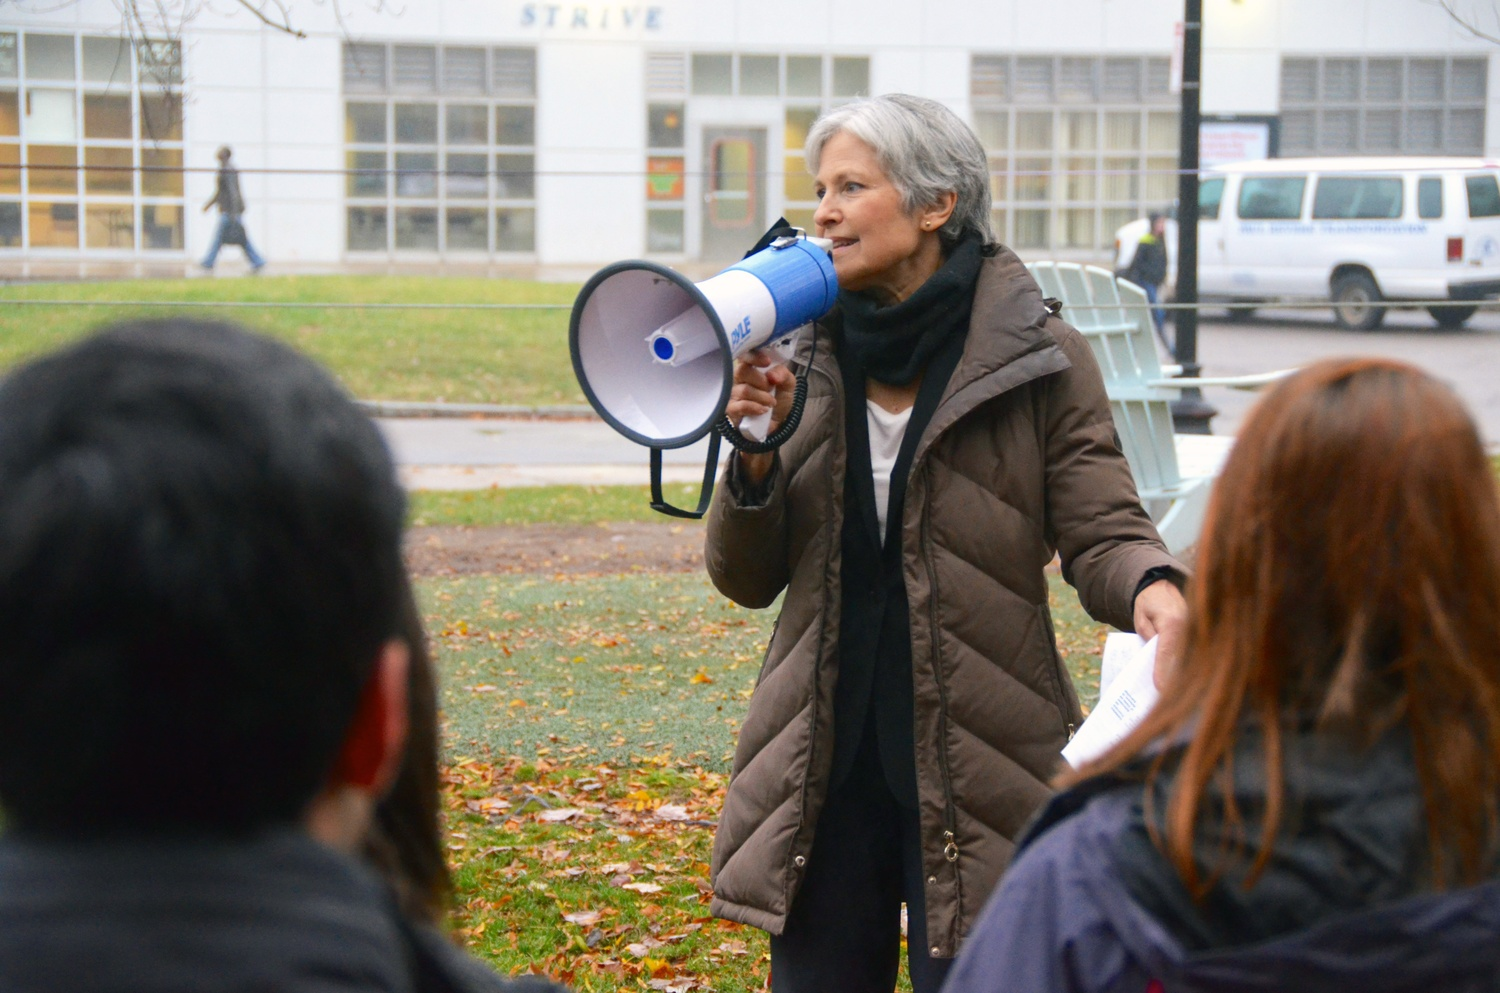 Stein at the Million Student March